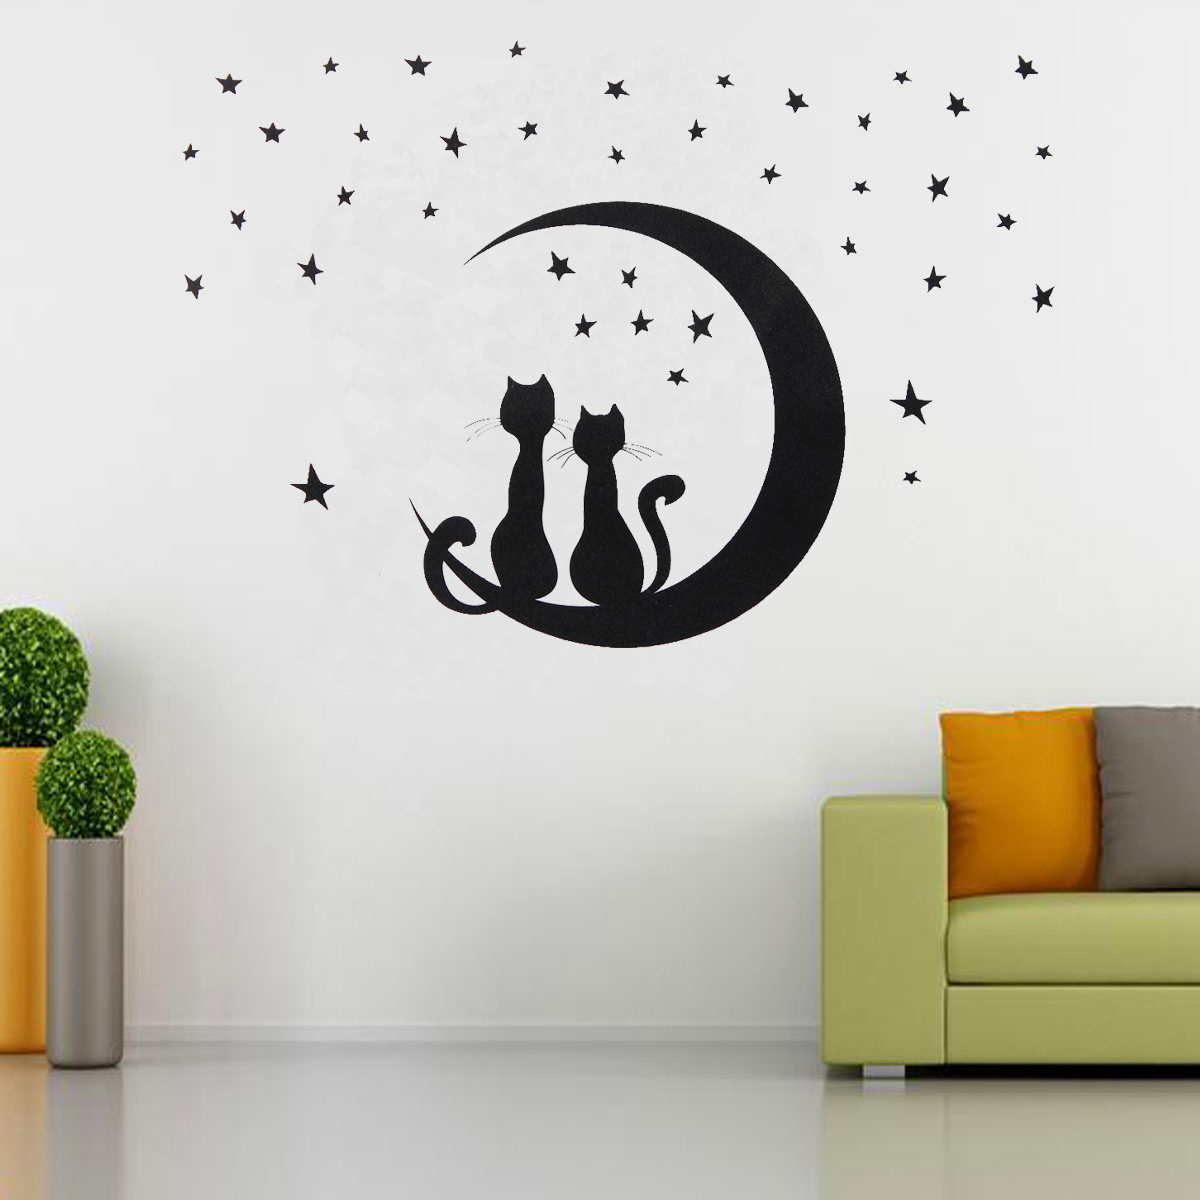 two cats sitting on moon w stars wall sticker decal home room removable decor ebay. Black Bedroom Furniture Sets. Home Design Ideas